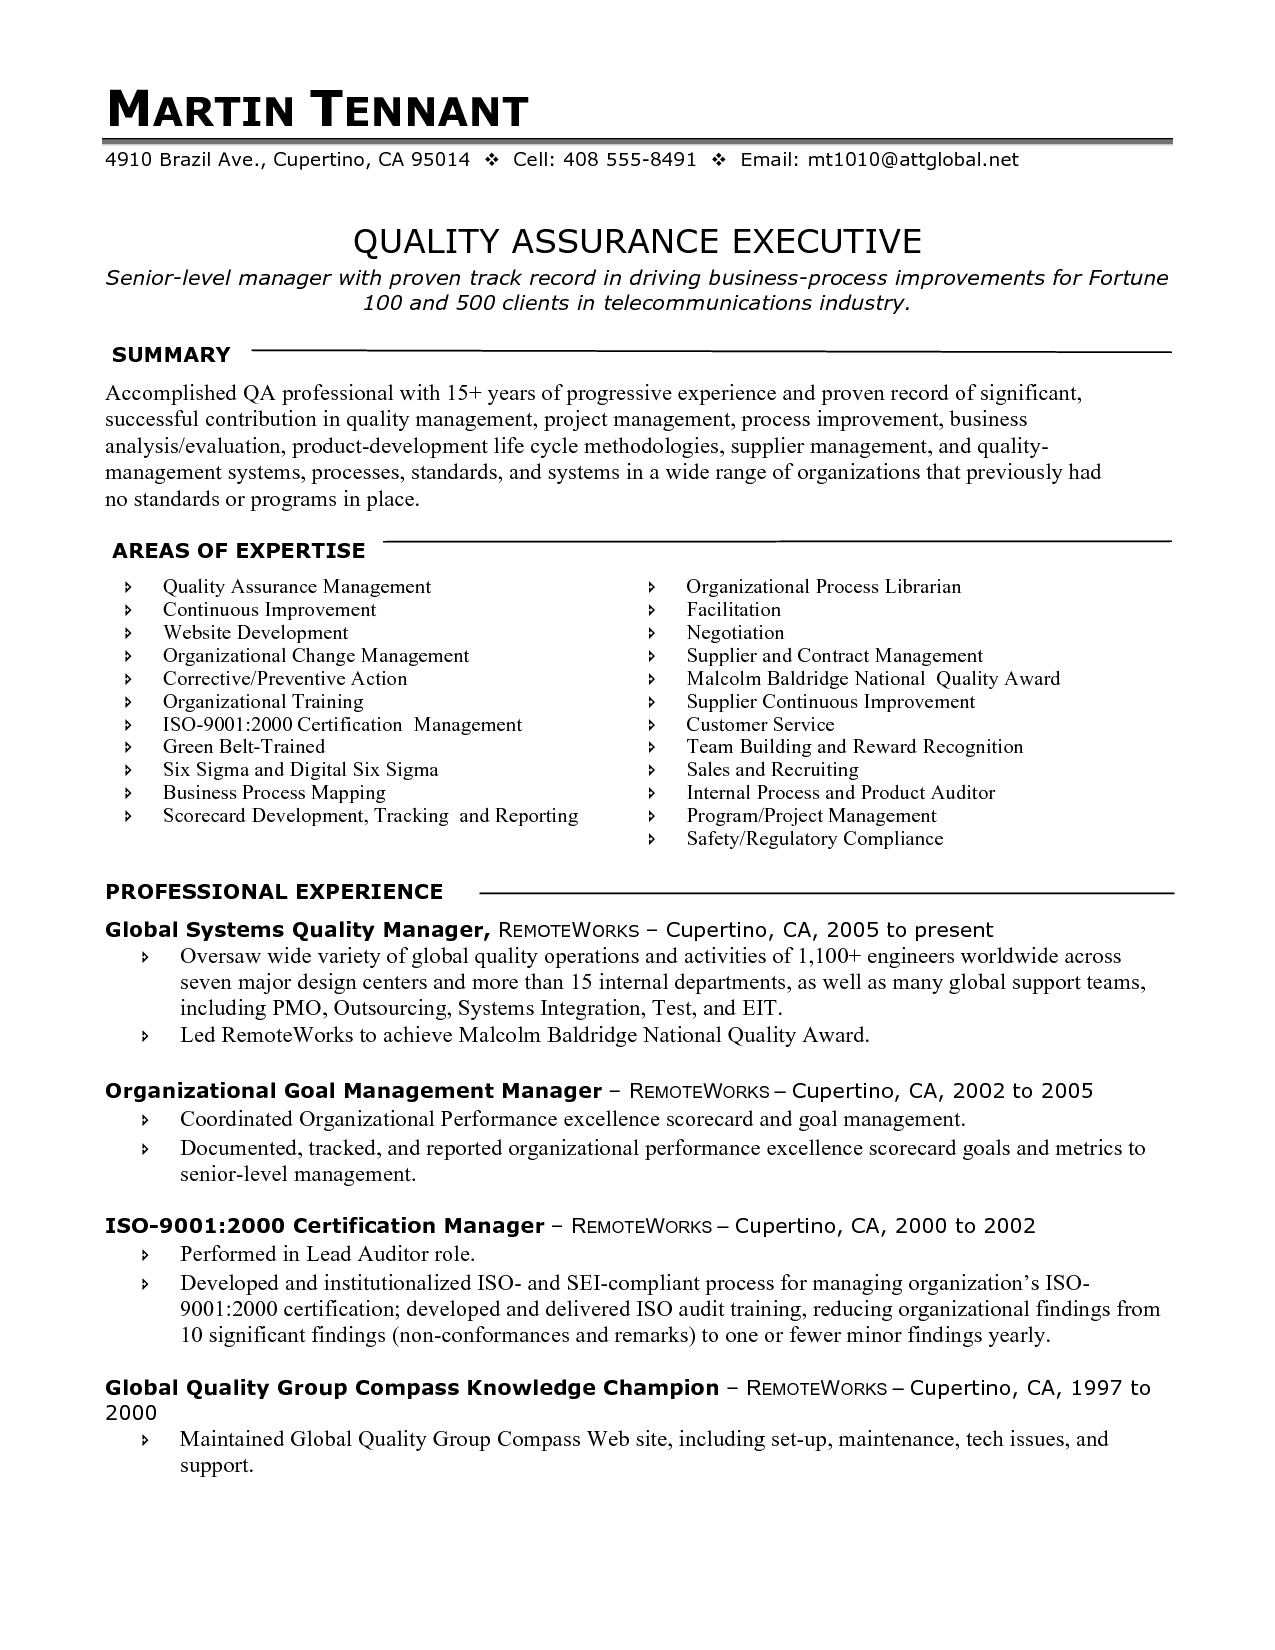 Resume Format Quality Control Manager Control Format Manager Quality Resume Resumeformat Resume Examples Manager Resume Good Resume Examples